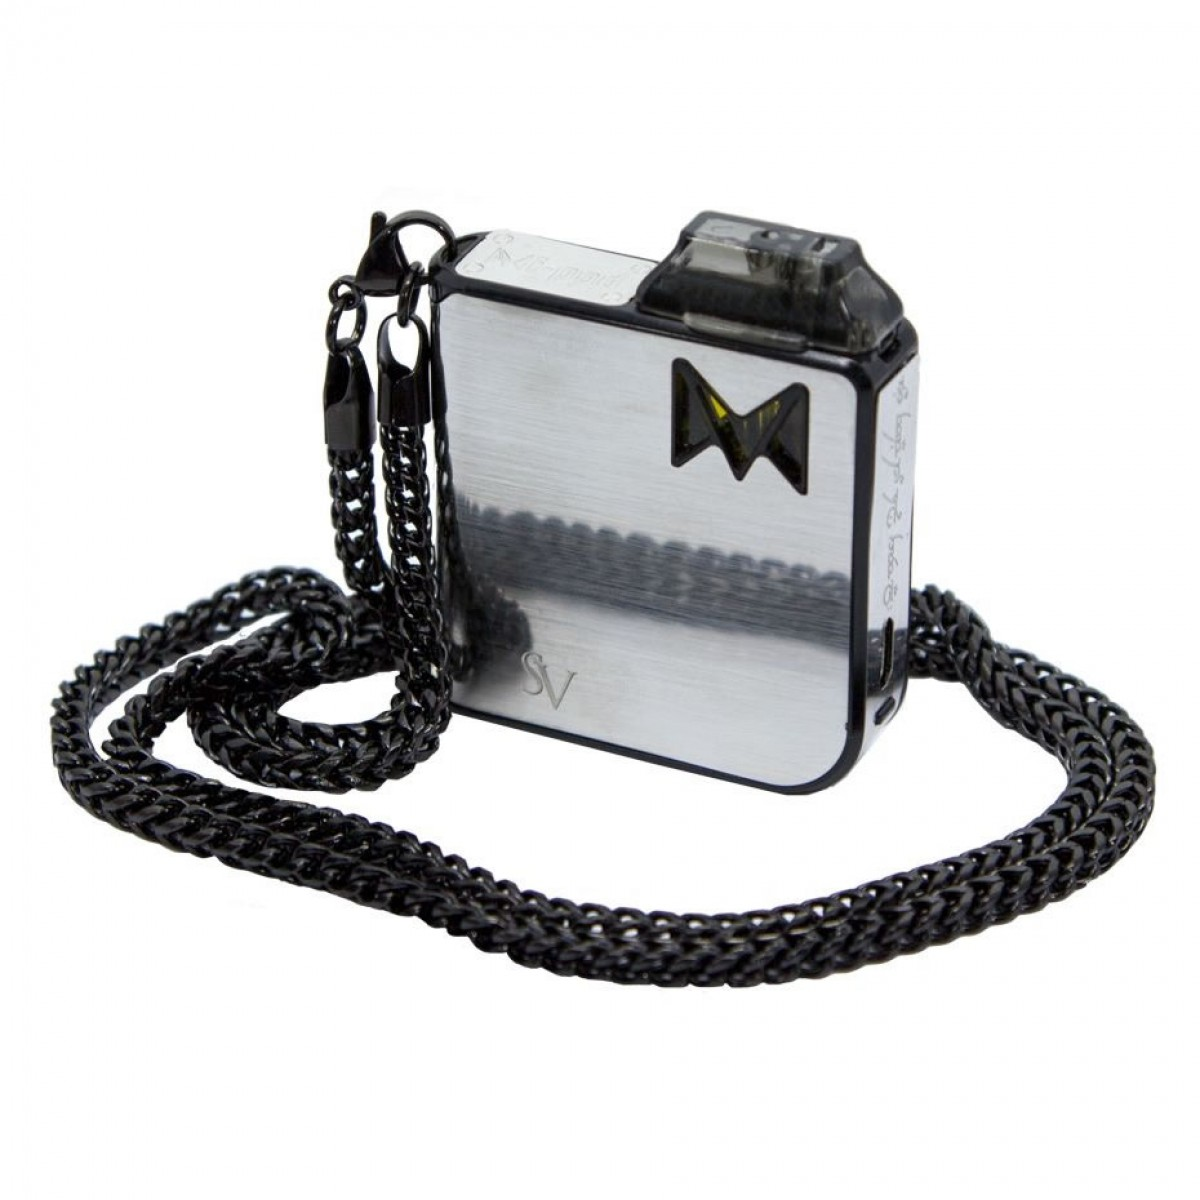 MI-POD & MI-ONE NECK CHAIN BY SMOKING VAPOR